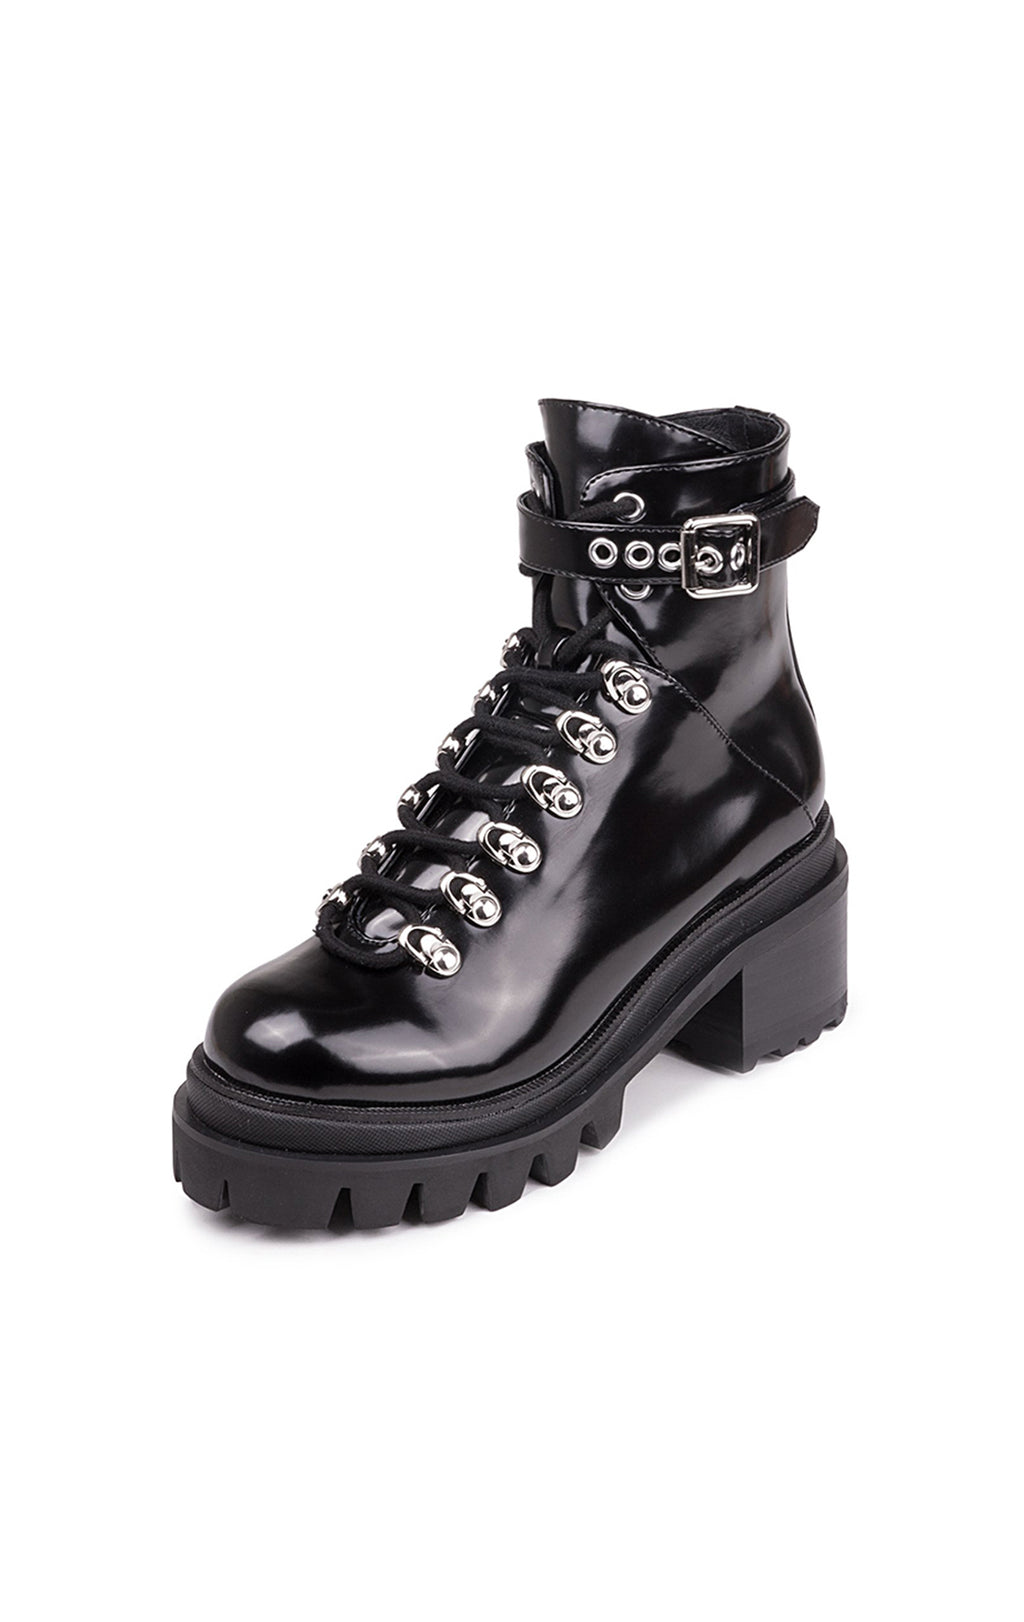 CZECH COMBAT BOOT WITH CHUNKY LUG SOLE